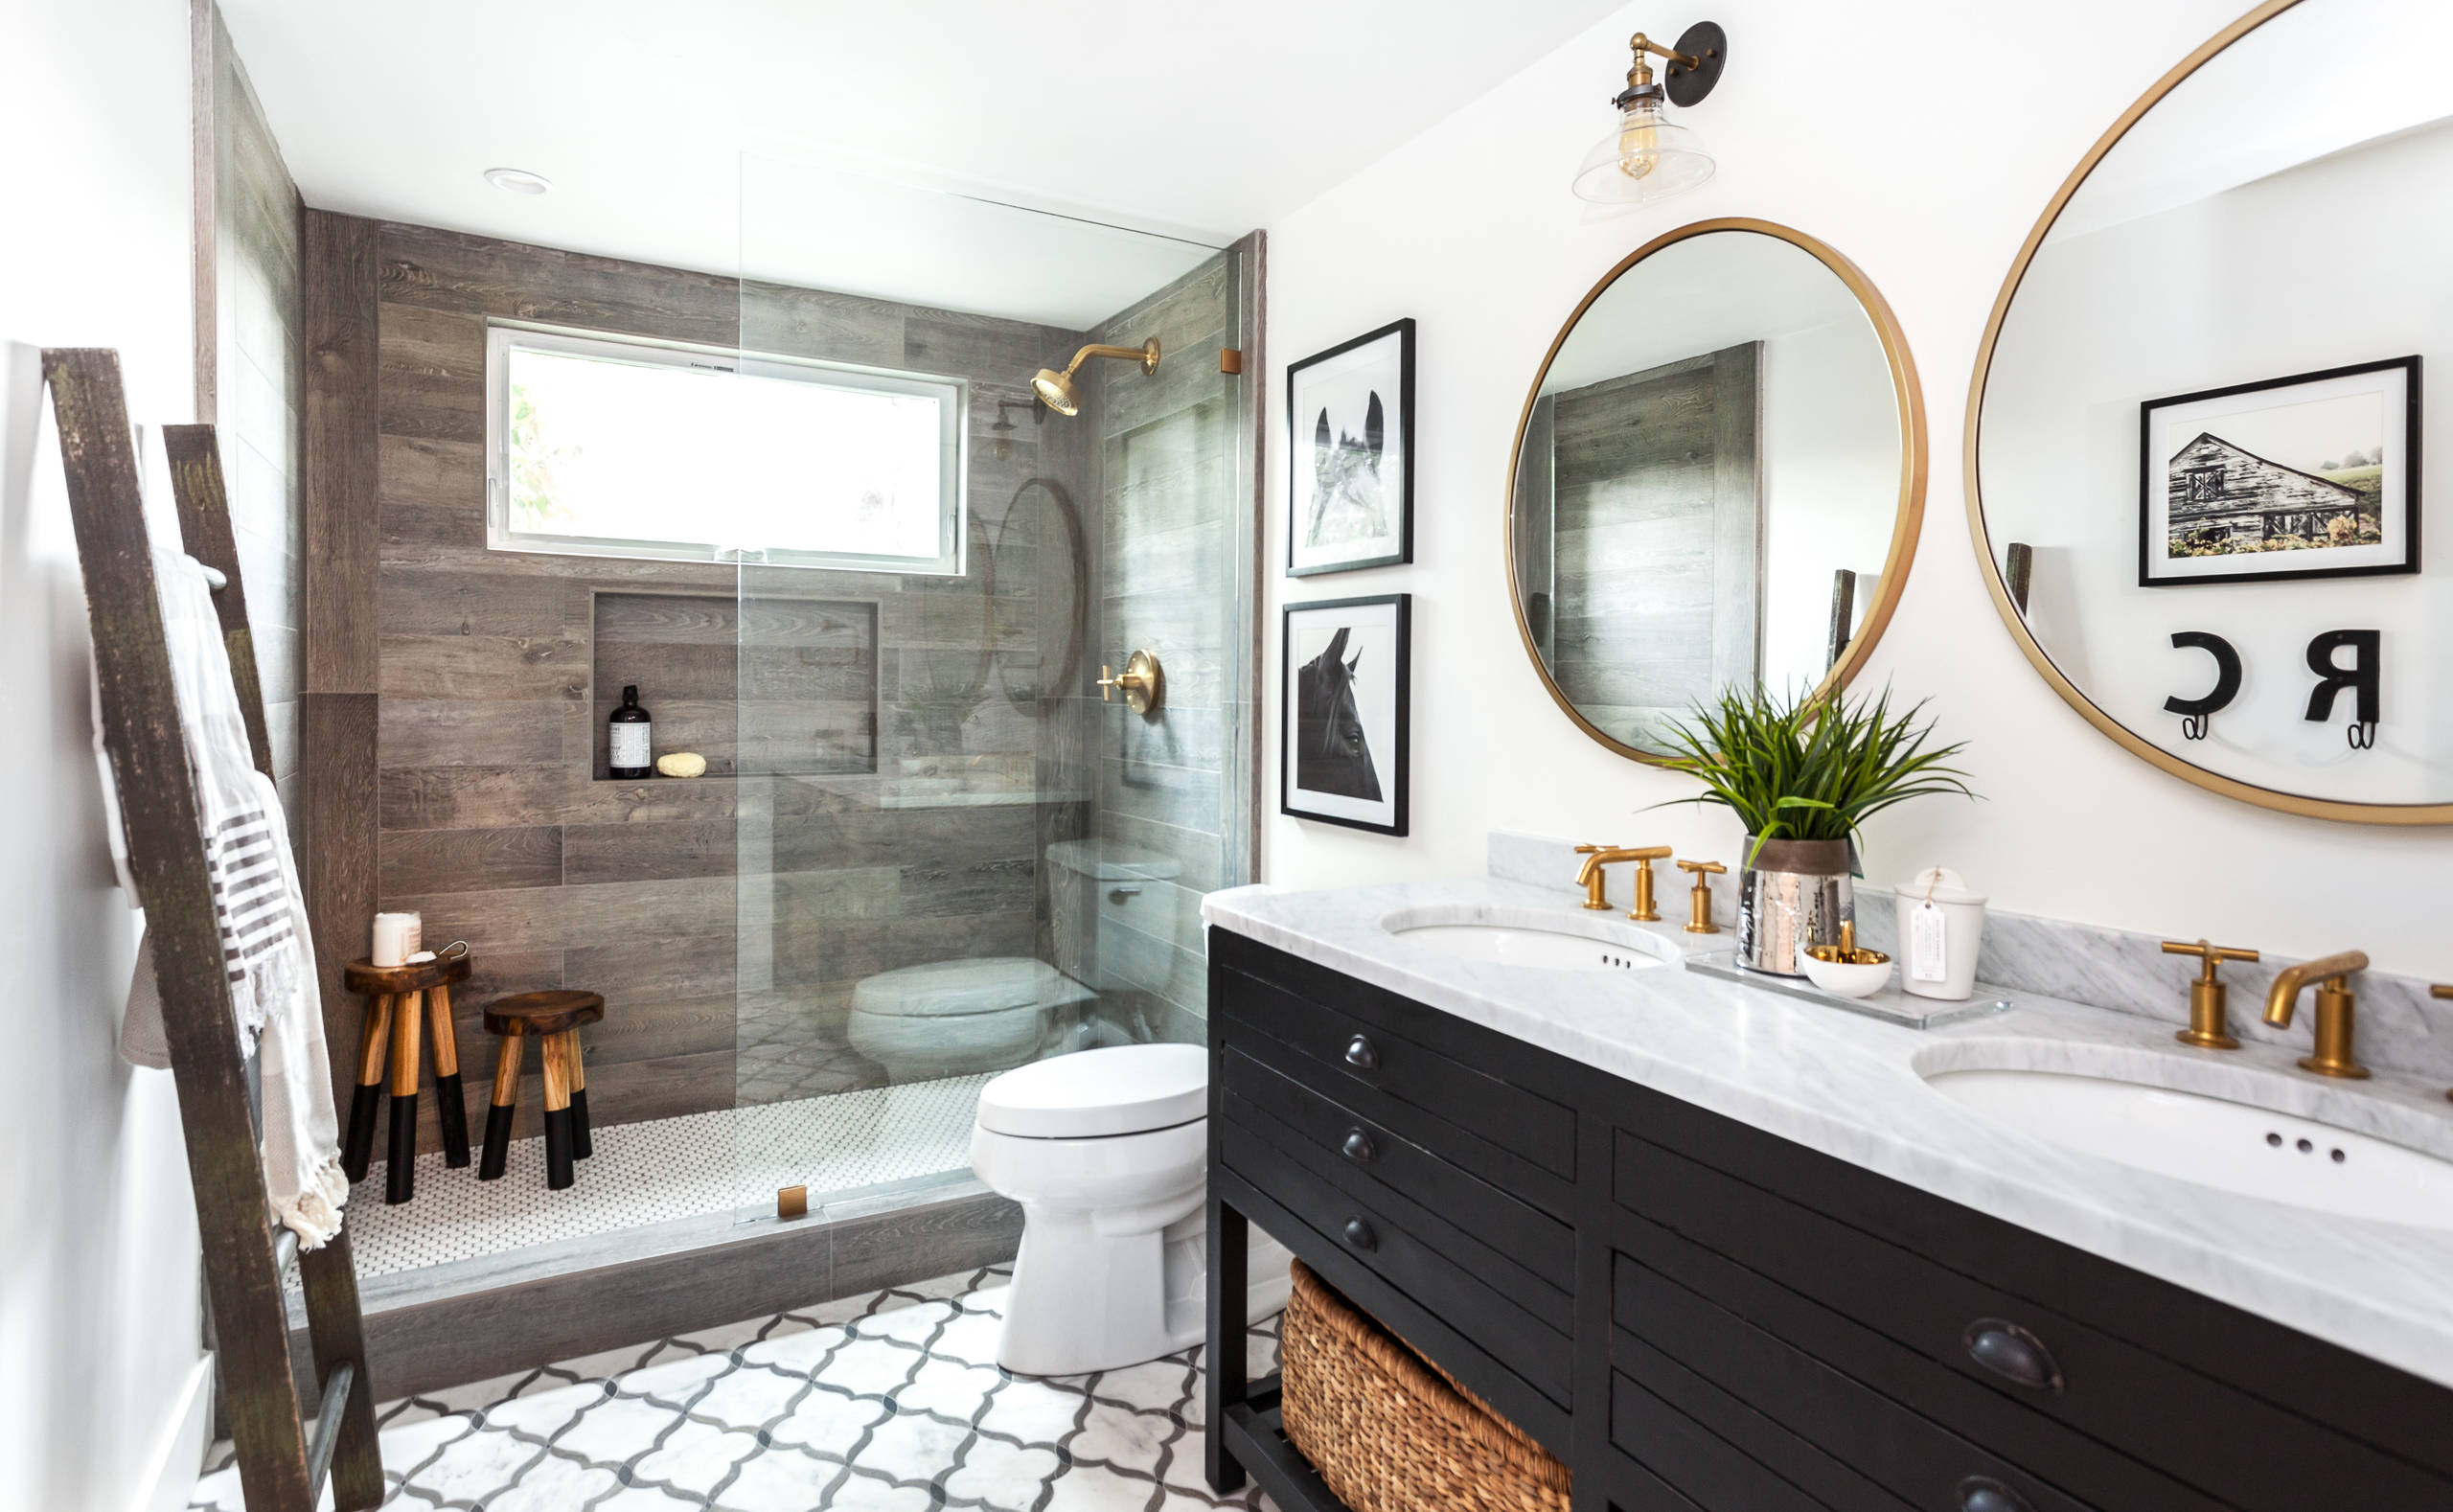 2020 Tips and Tricks for Your Best Bathroom Remodel Yet ... on Small Bathroom Ideas 2020 id=66519